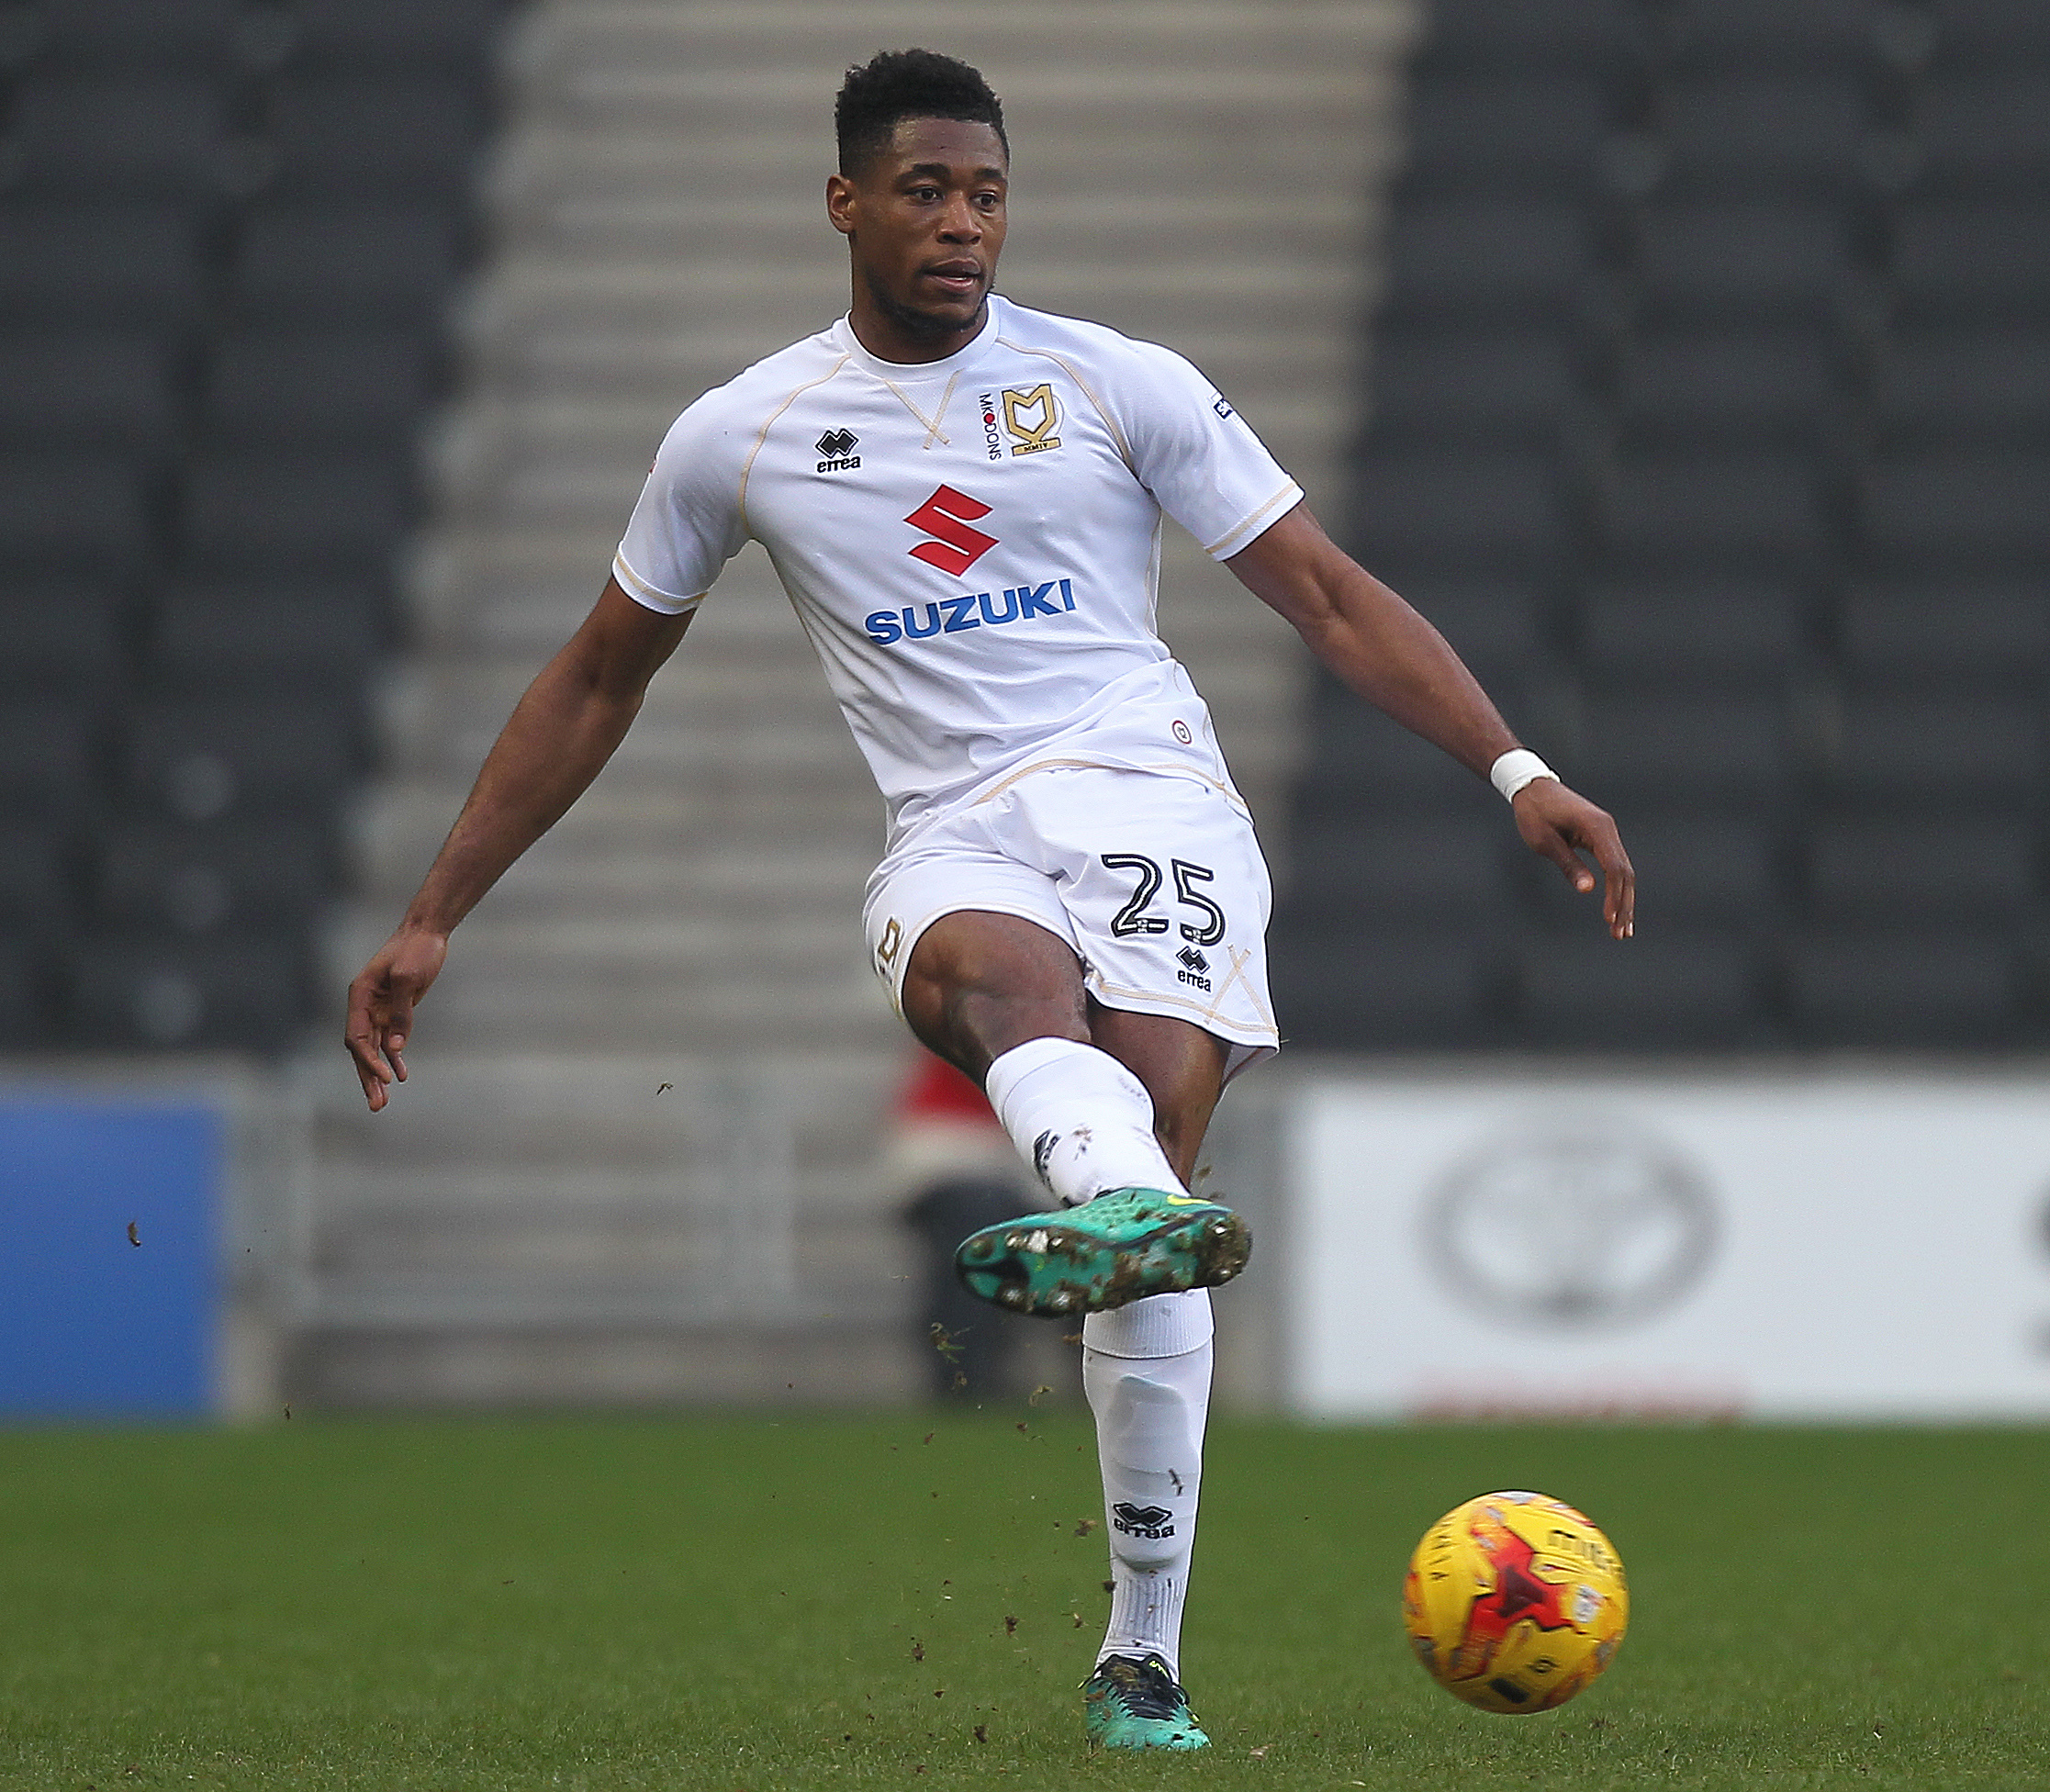 POSSIBLE: MK Dons attacker Chuks Aneke is one of the options being explored